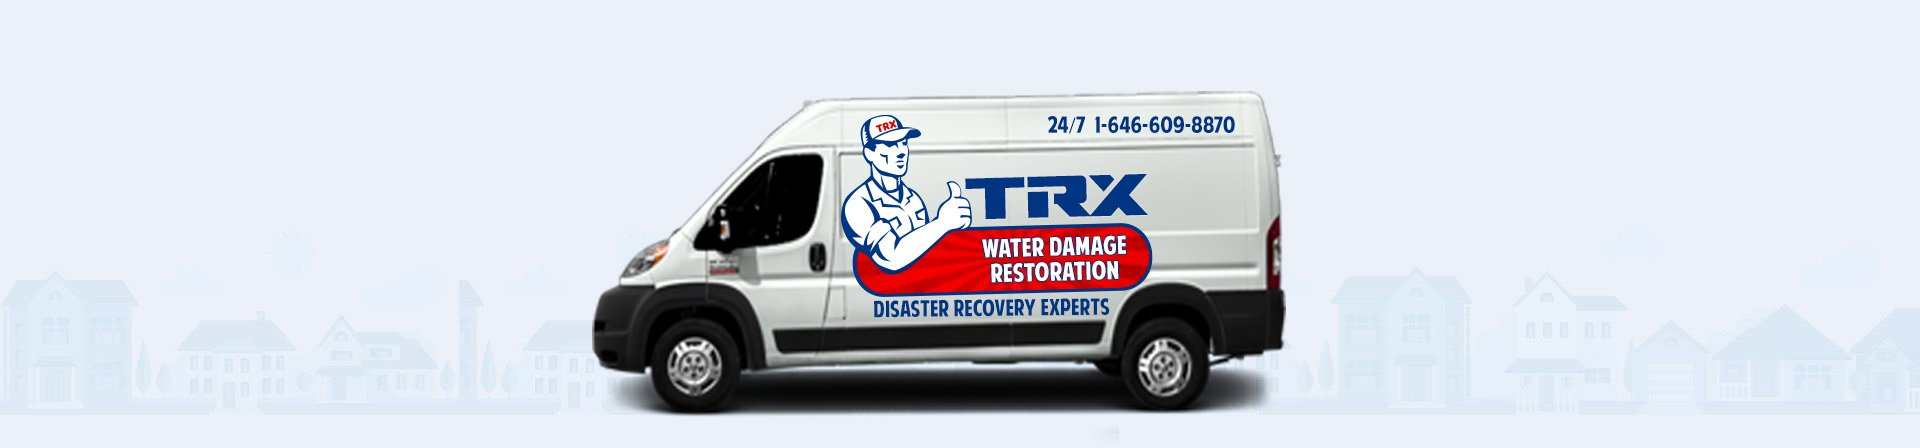 Water Damage restoration Mitigation